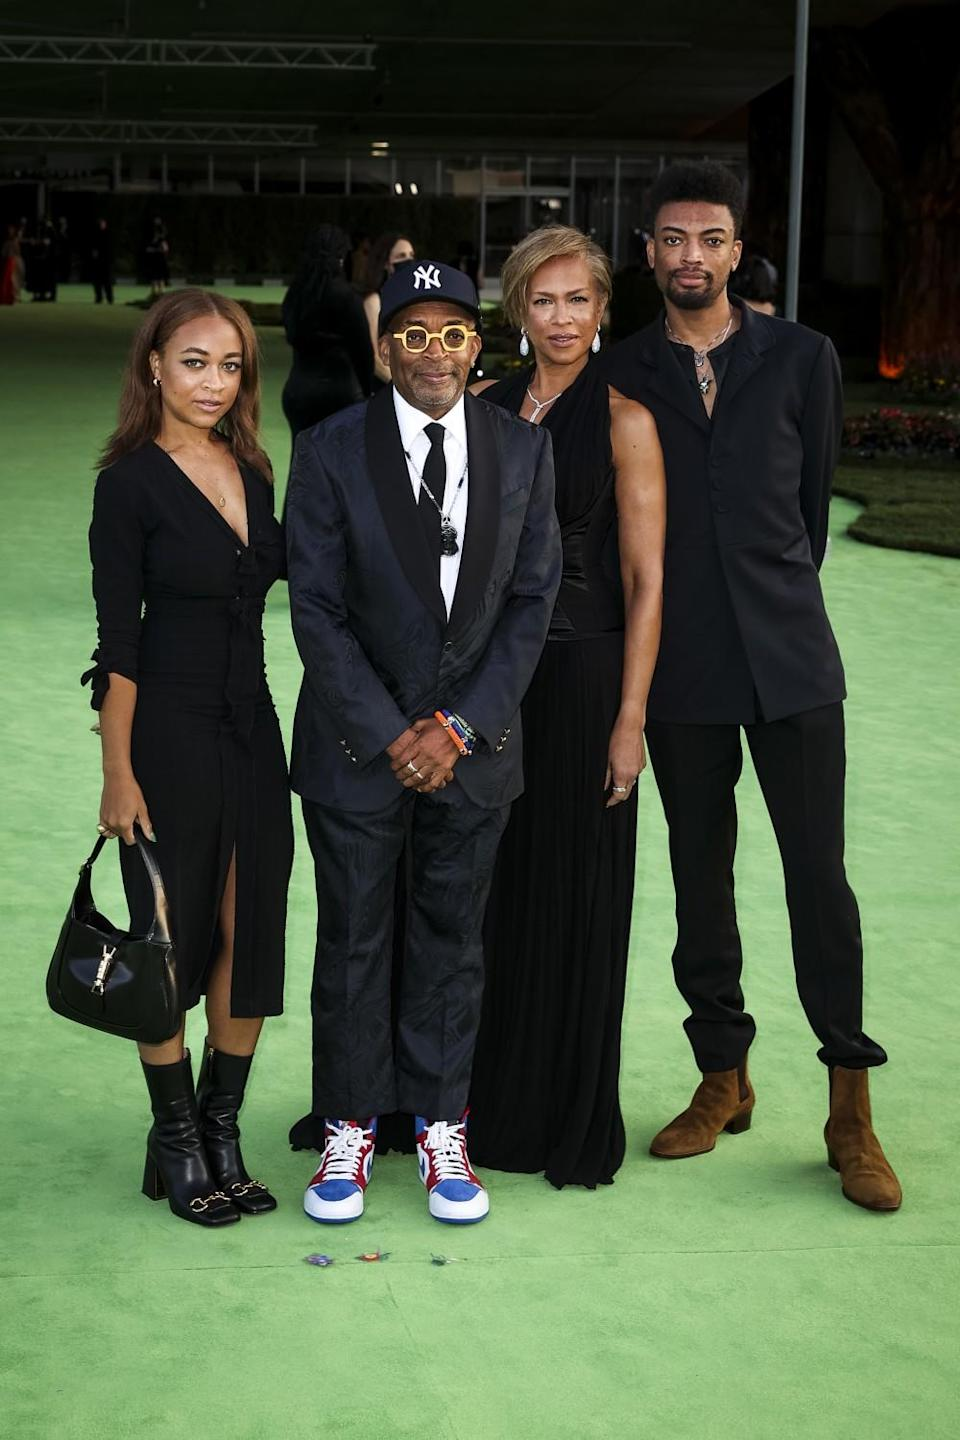 A family of four posing in black formal attire on a green carpet